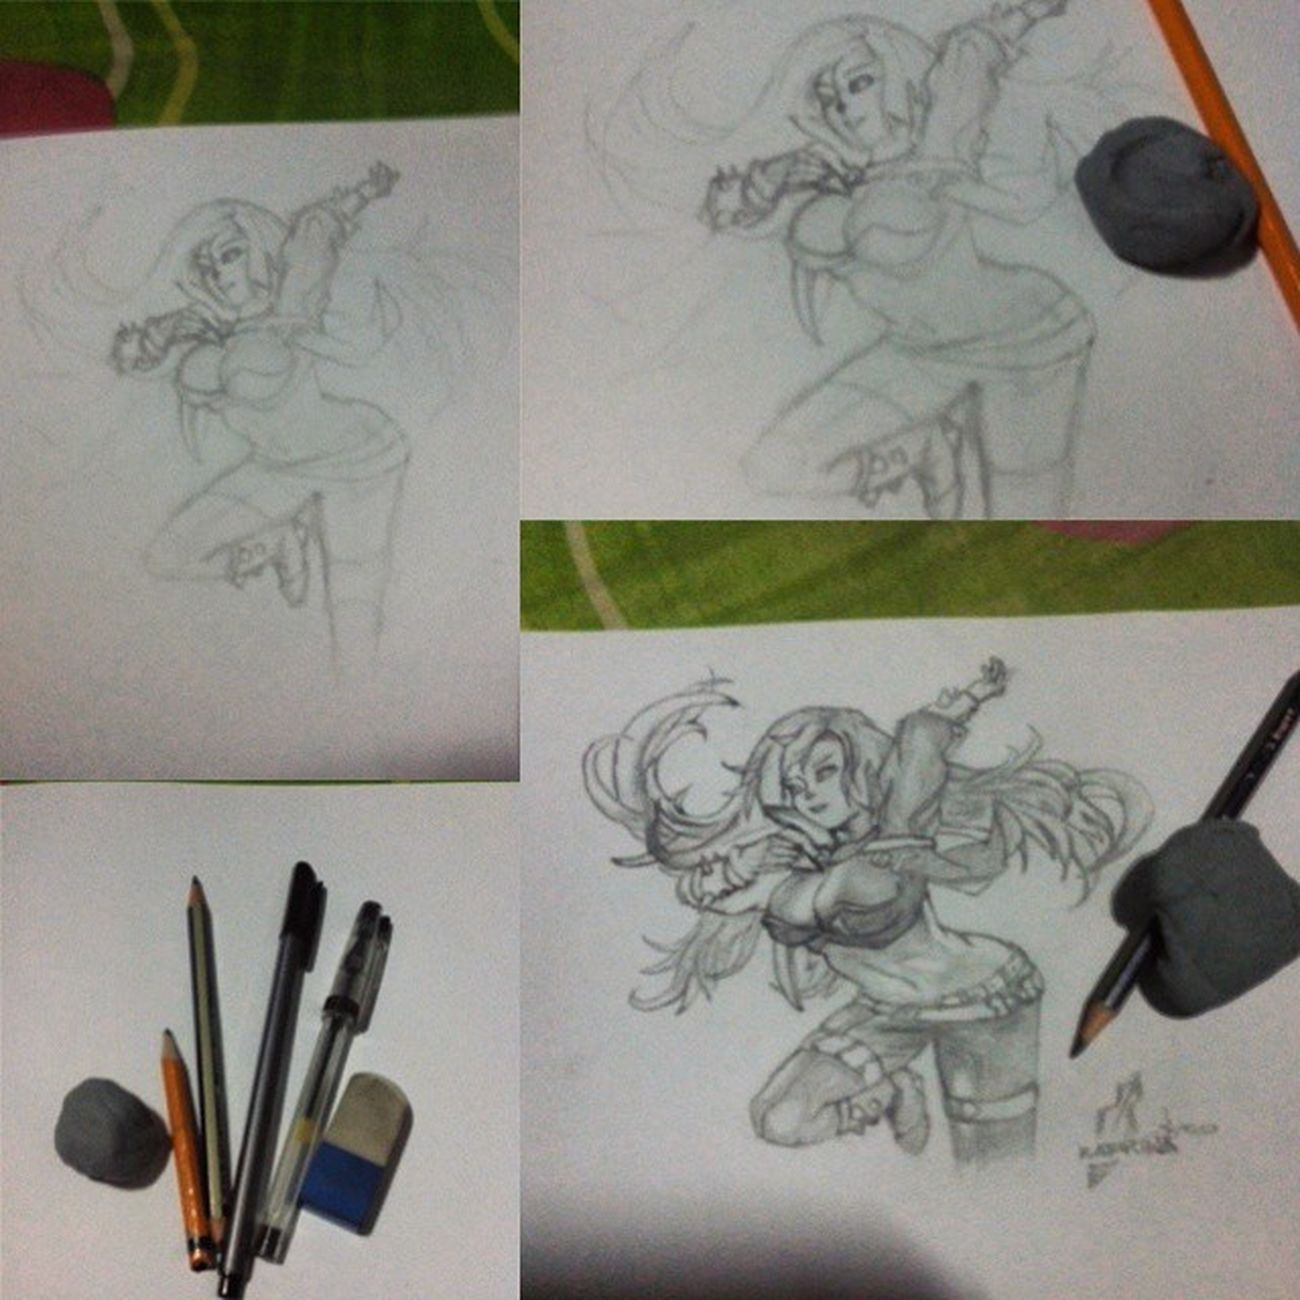 Katarina Themaking Nonstop Drawing LOL leagueoflegends